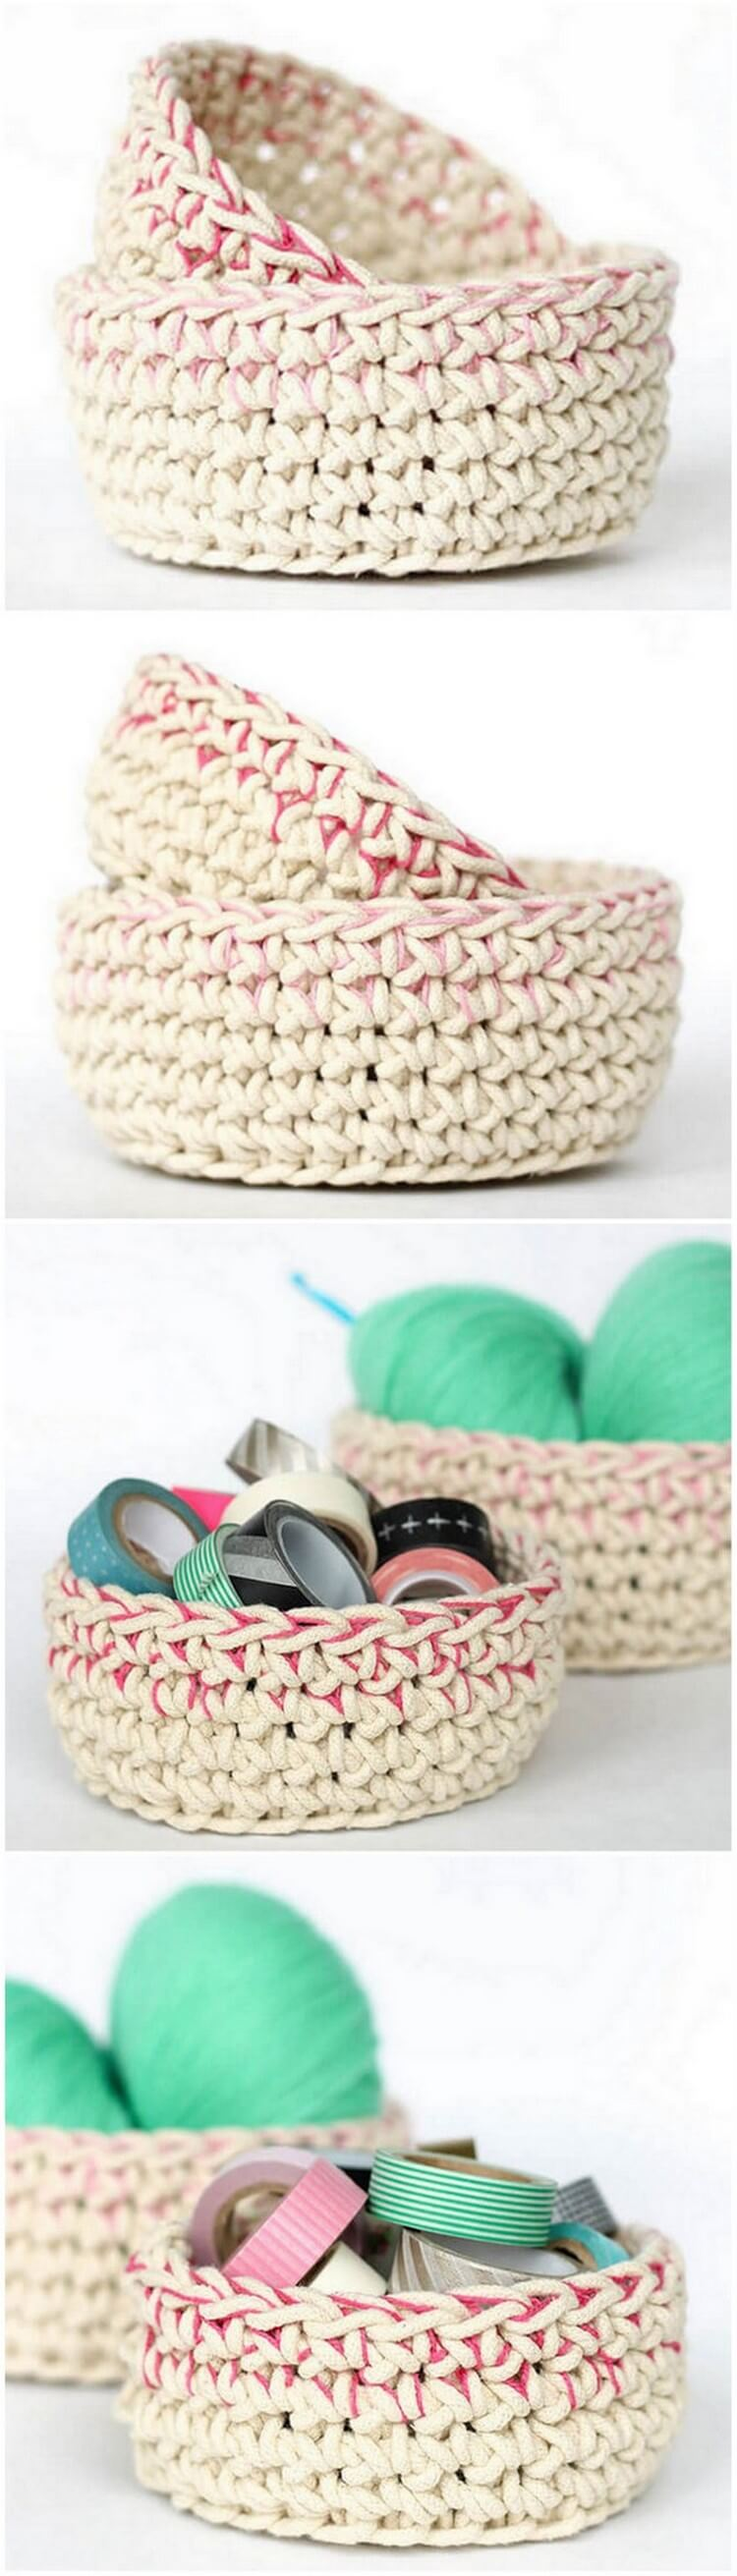 Crochet Basket Pattern (74)